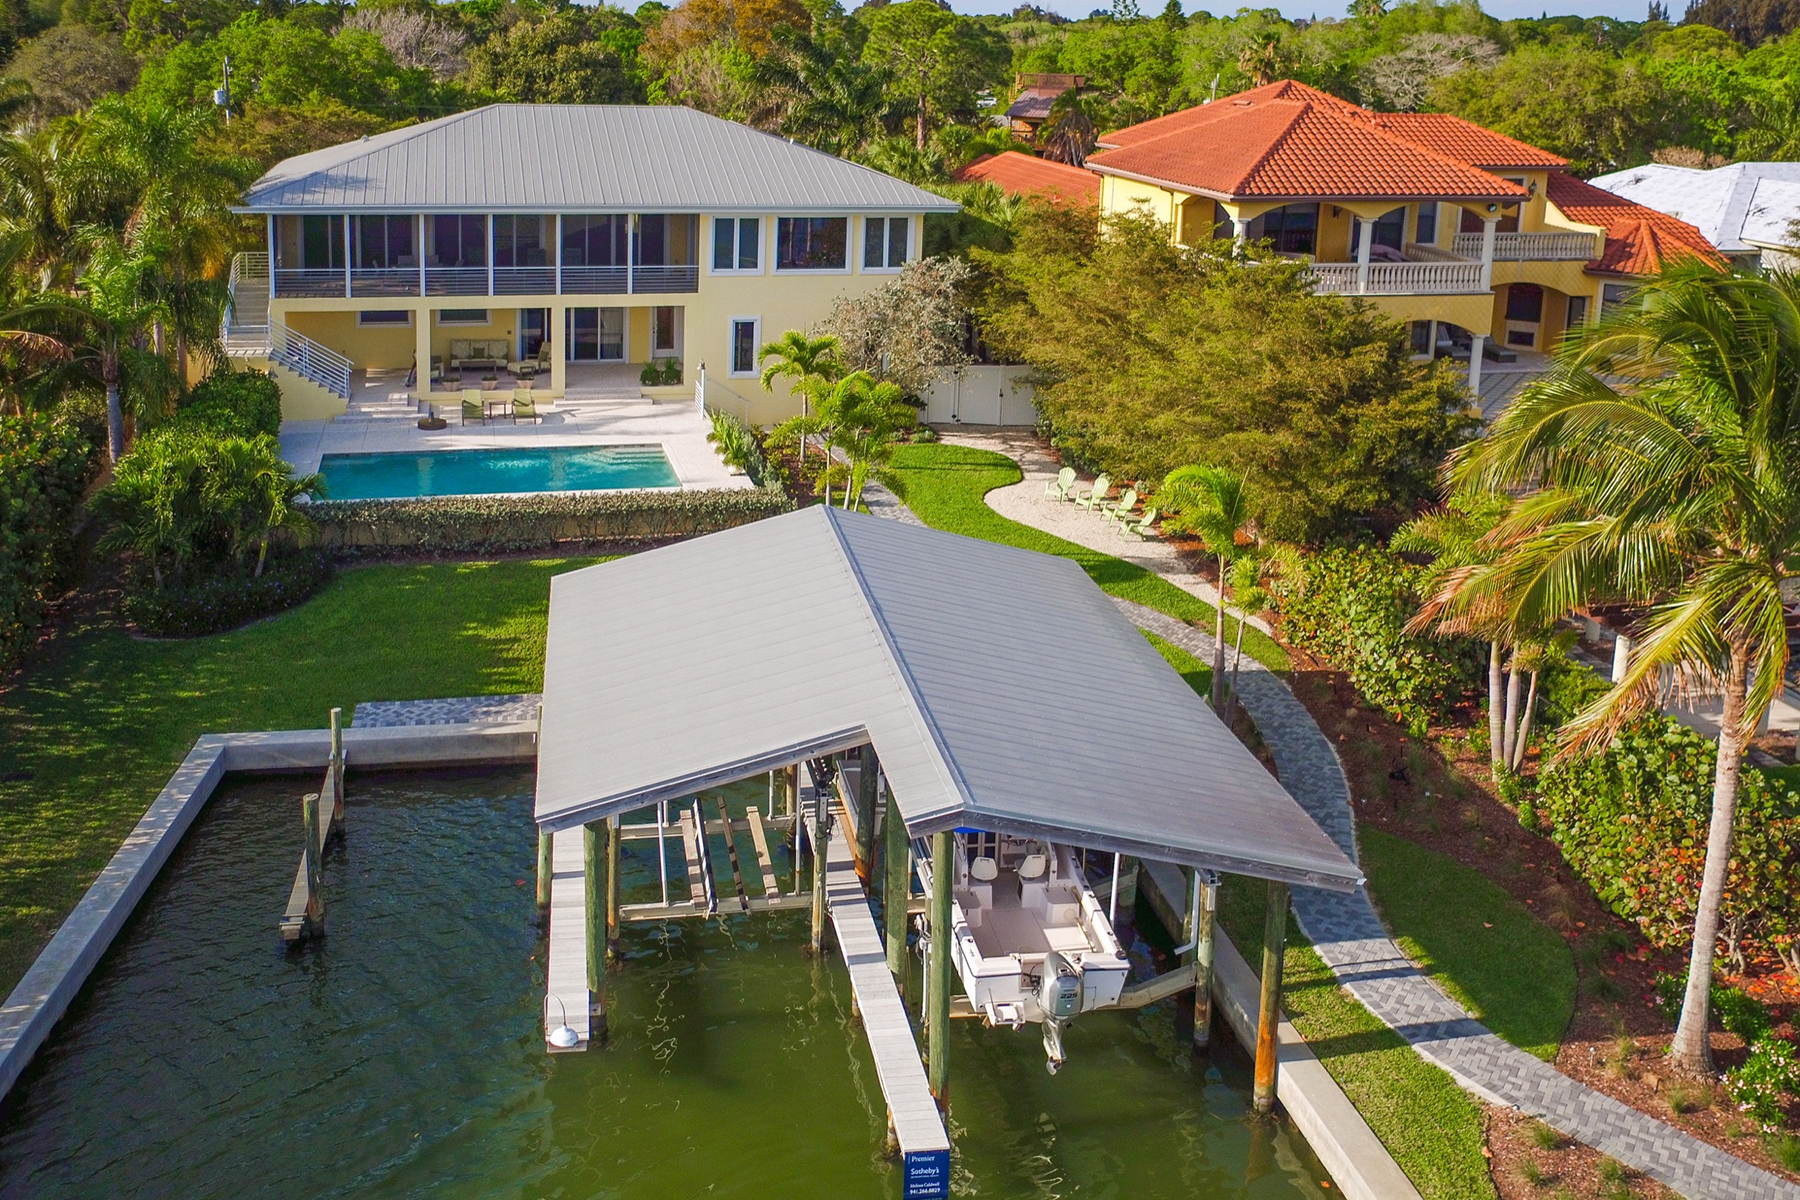 Single Family Home for Sale at BAY POINT 525 Bayview Pkwy Nokomis, Florida, 34275 United States